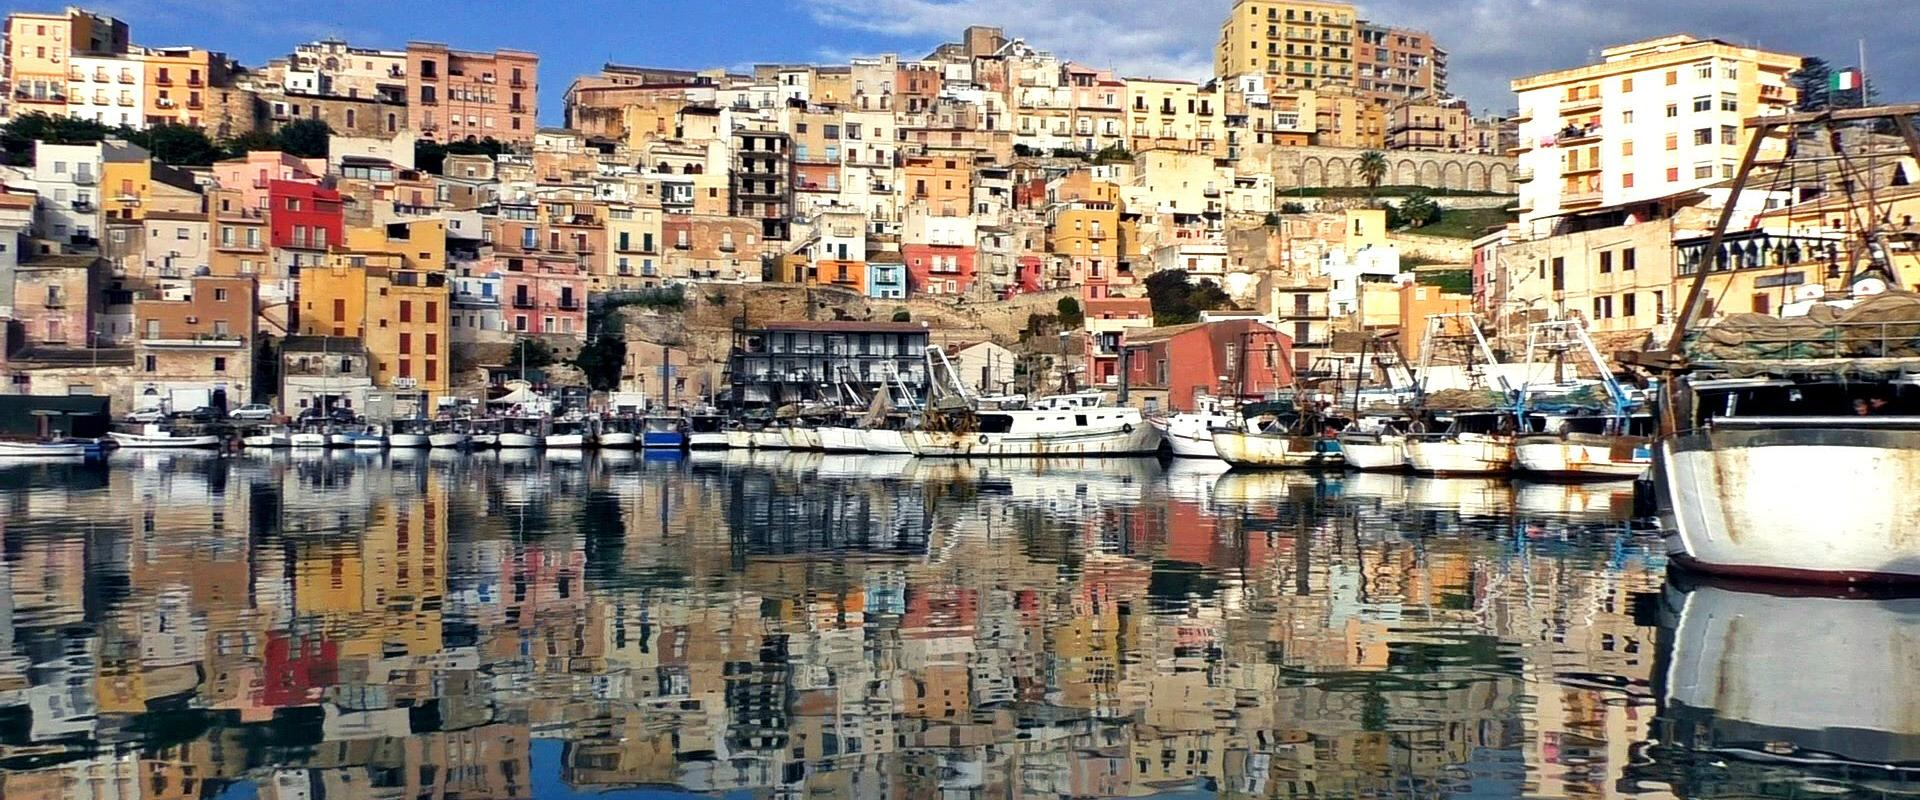 Visit of Sciacca Sicily